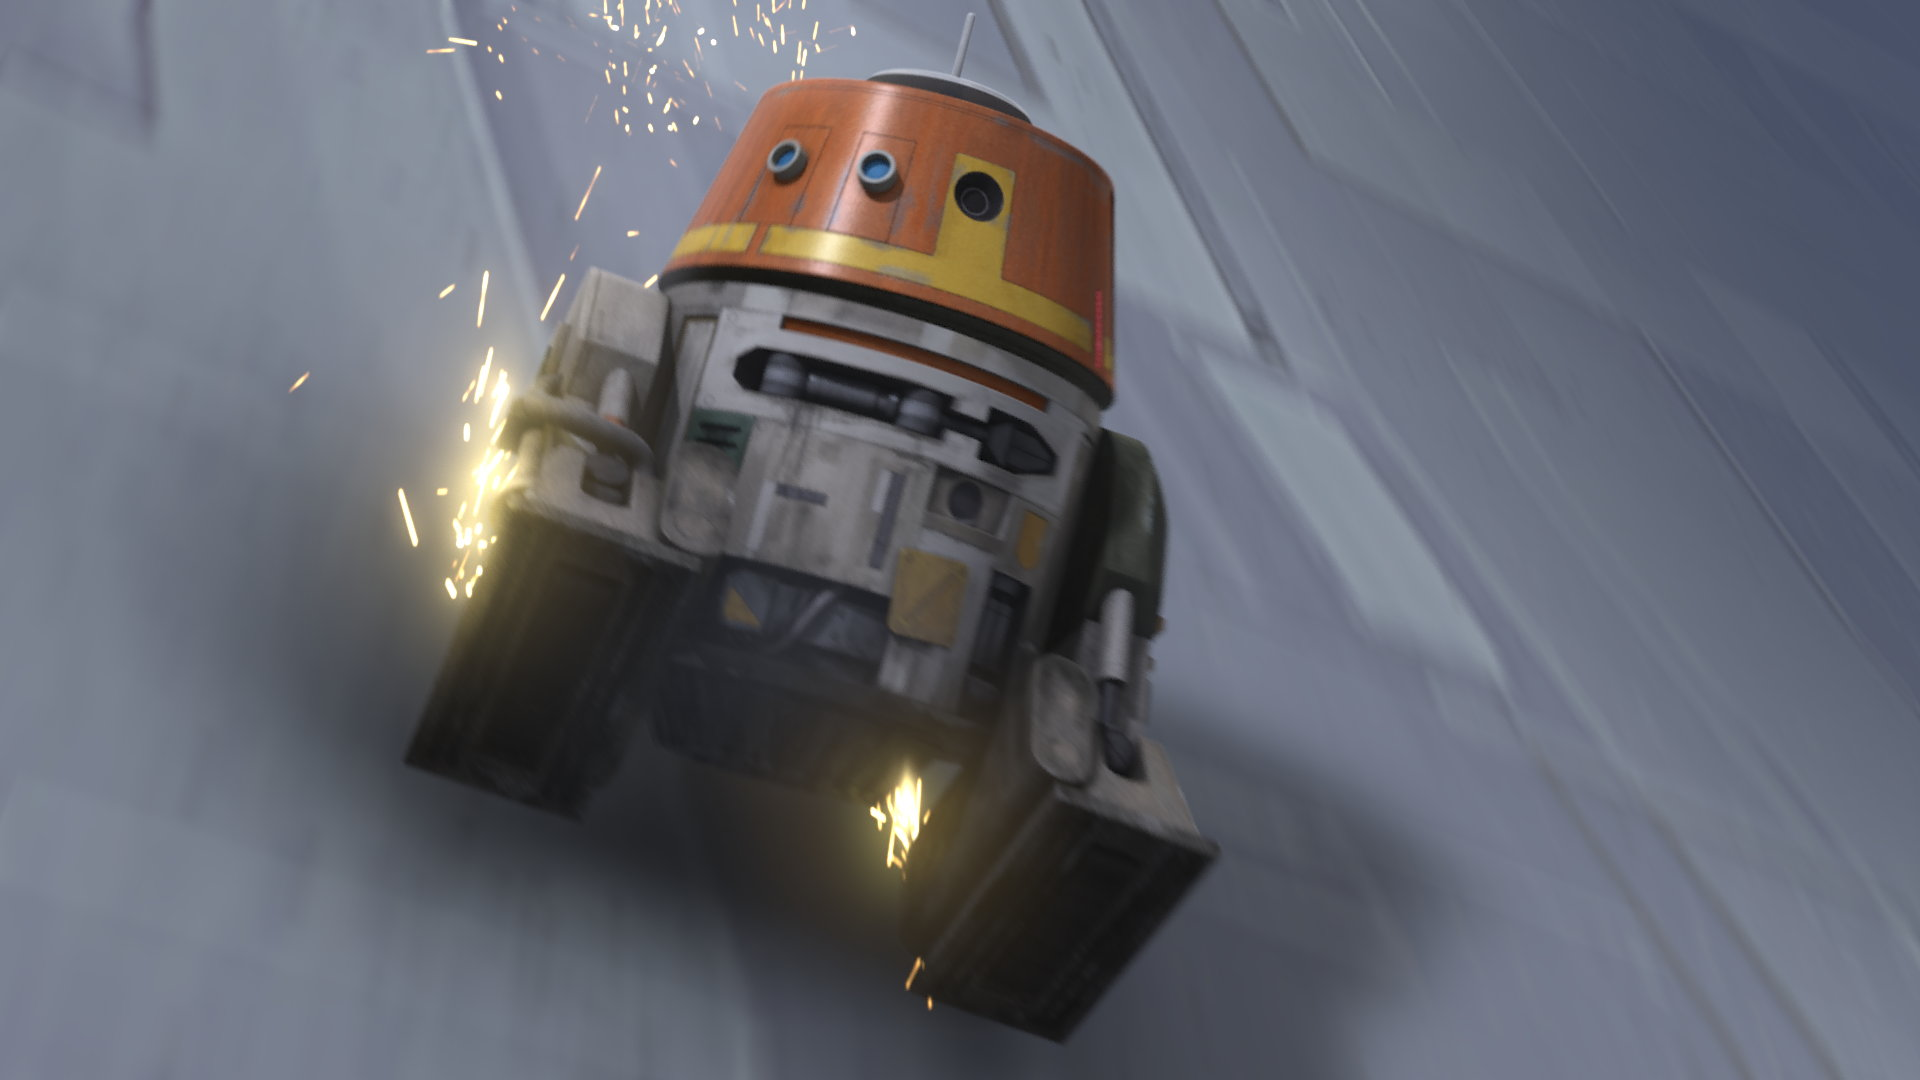 Star Wars Rebels' 4th season will be its last: here's a look at what's coming